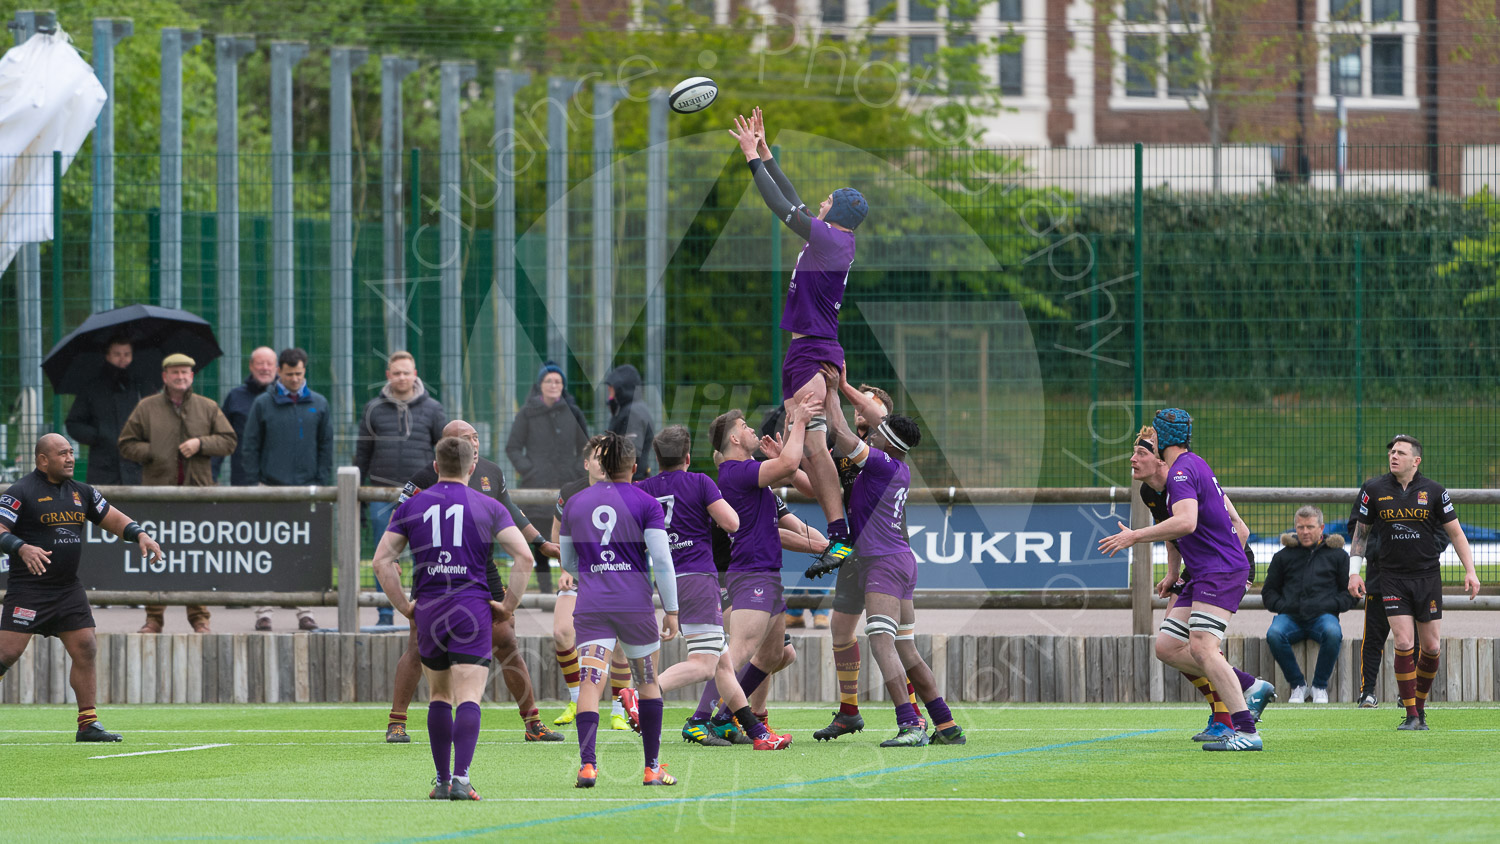 20190427 Loughborough vs Ampthill 1st XV #6442